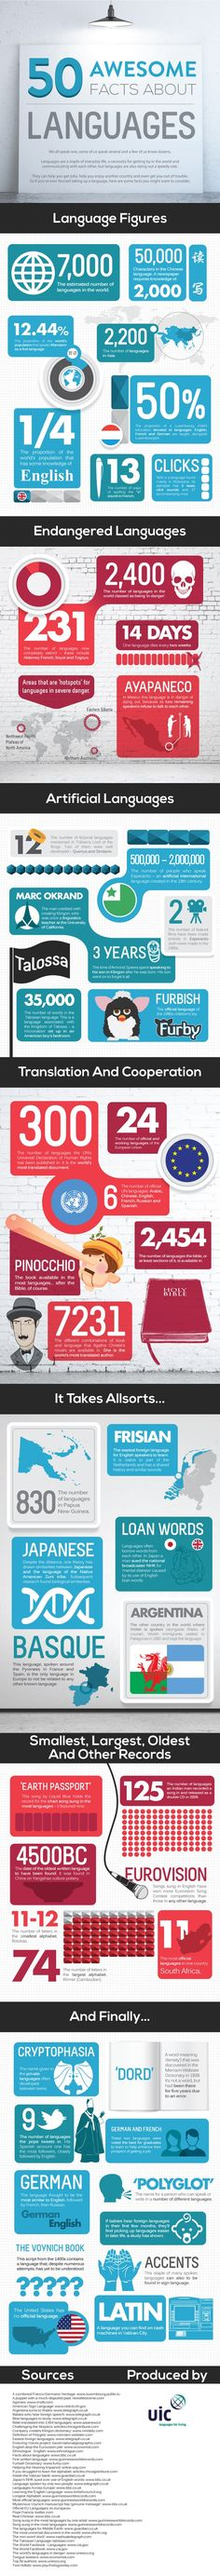 50 Awesome Facts About Languages #Infographic #Facts #Education #Languages